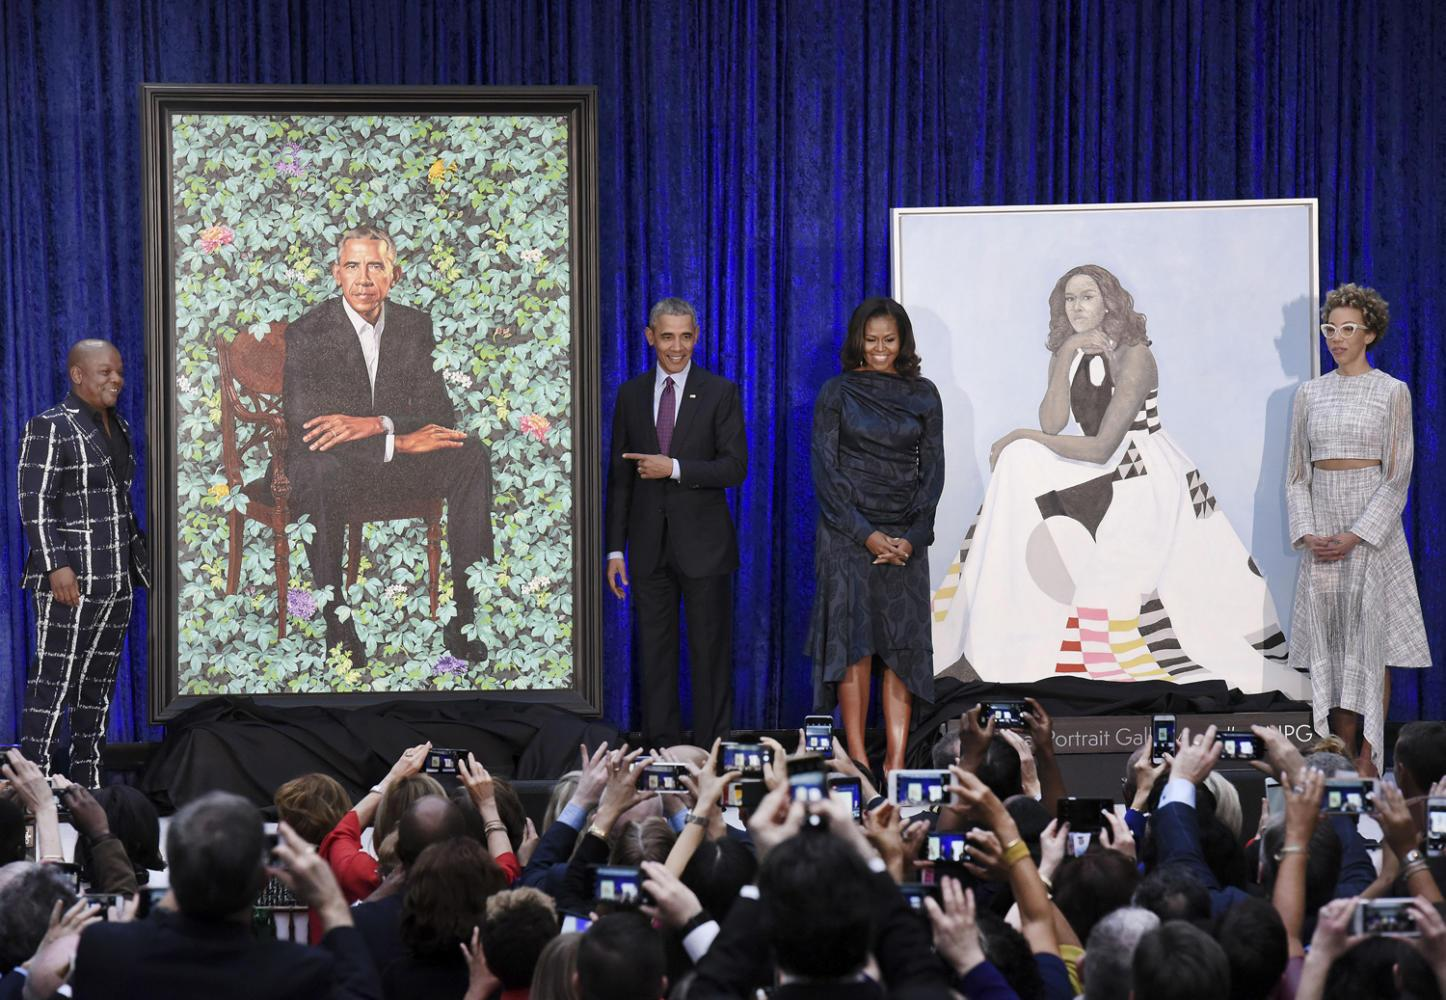 Former First Lady Michelle Obama and former President Barack Obama pose with artists Kehinde Wiley and Amy Sherald during the unveiling of their official portraits at the National Portrait Gallery Monday in Washington, D.C. (Olivier Douliery/Abaca Press/TNS)